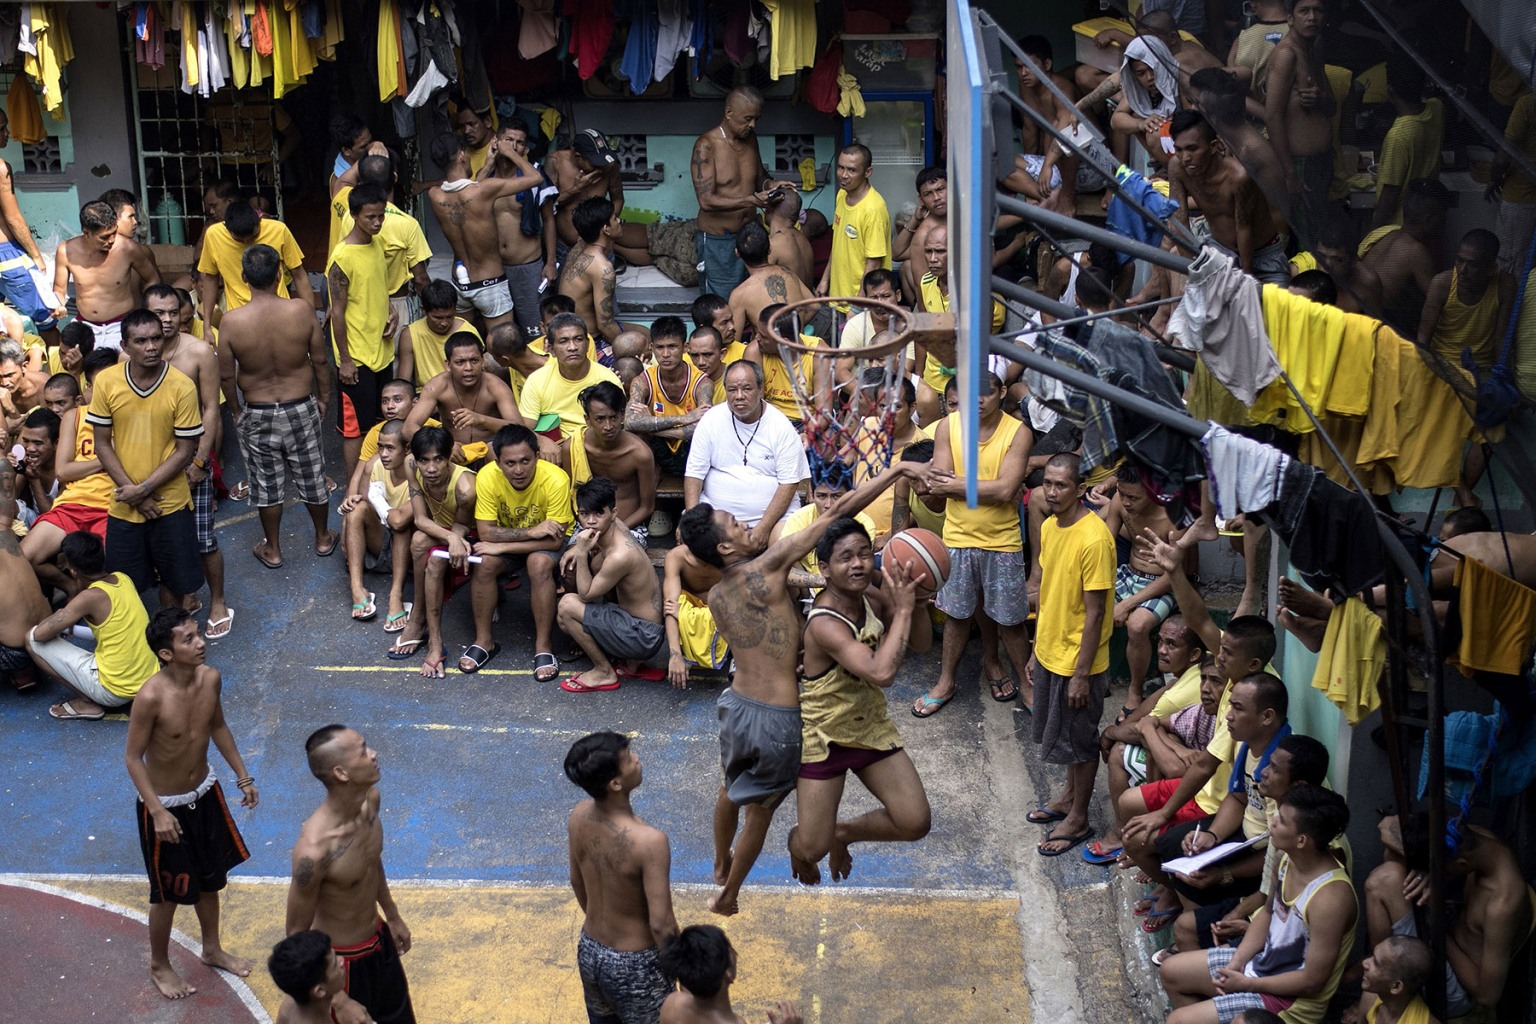 Inmates play basketball in the Quezon City jail in suburban Manila on Sept. 25. NOEL CELIS/AFP/Getty Images